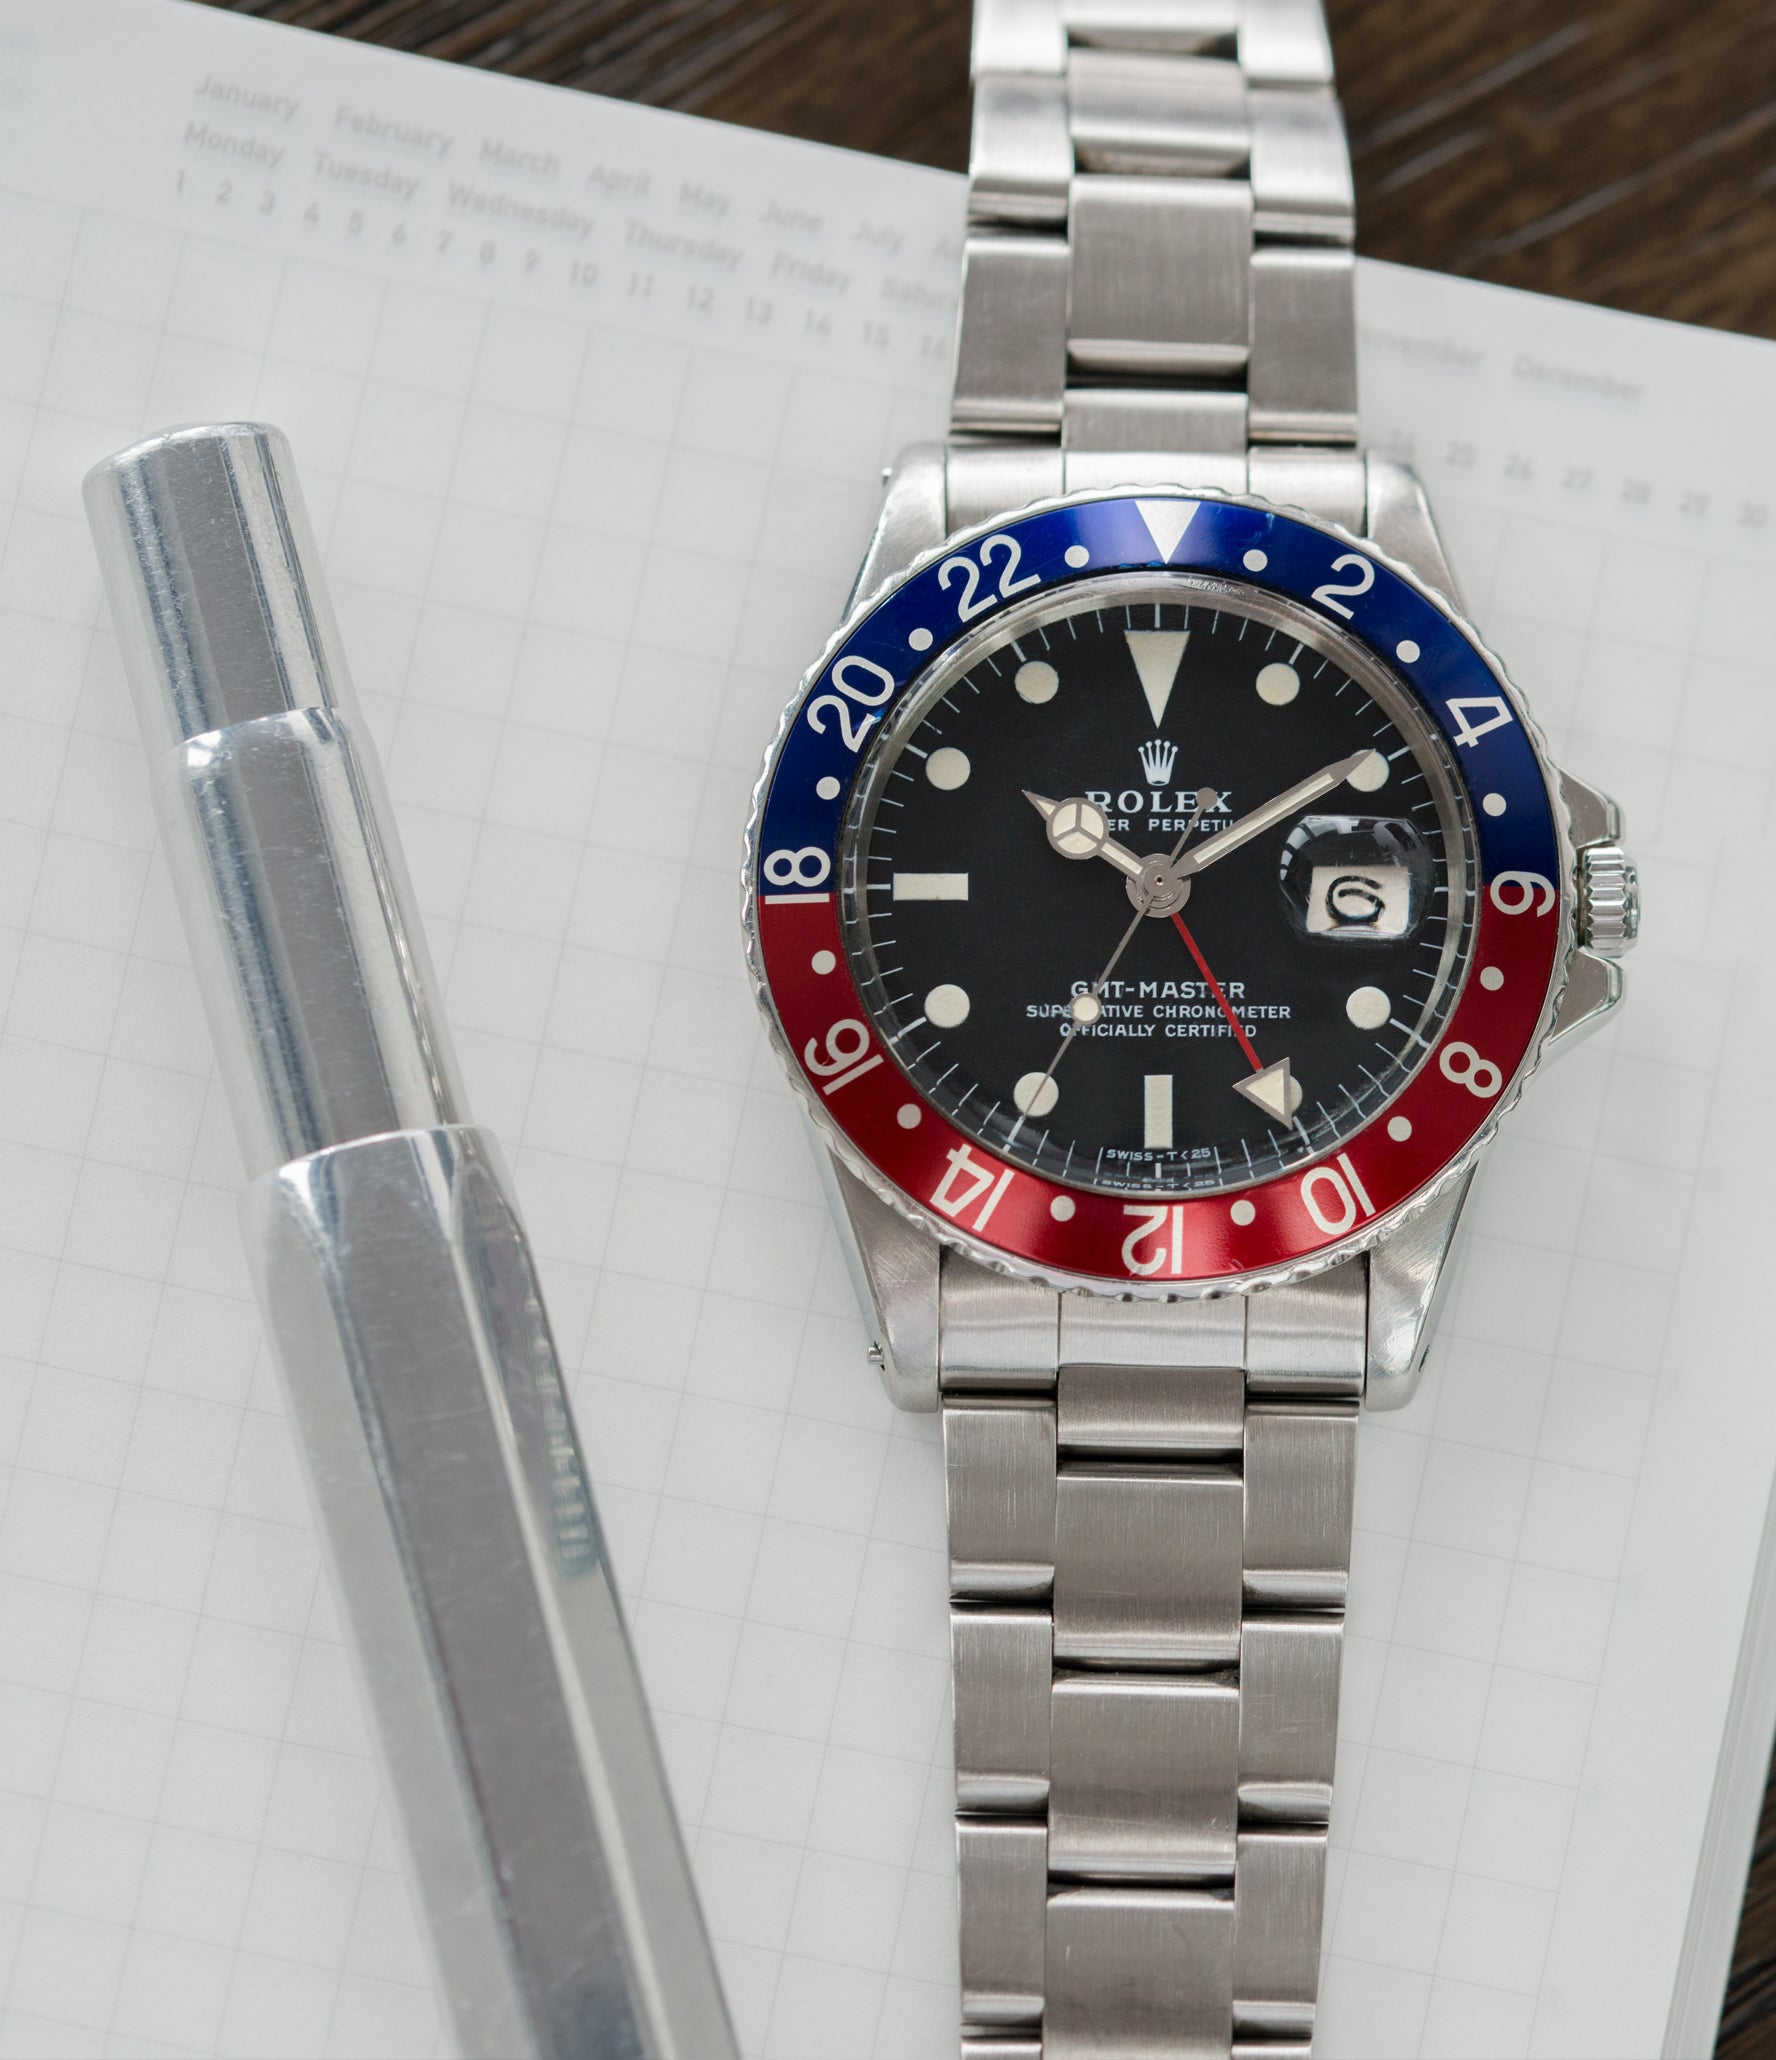 for sale vintage Rolex GMT Master 1675 steel traveller sport watch Pepsi bezel for sale online at A Collected Man London vintage watch specialist